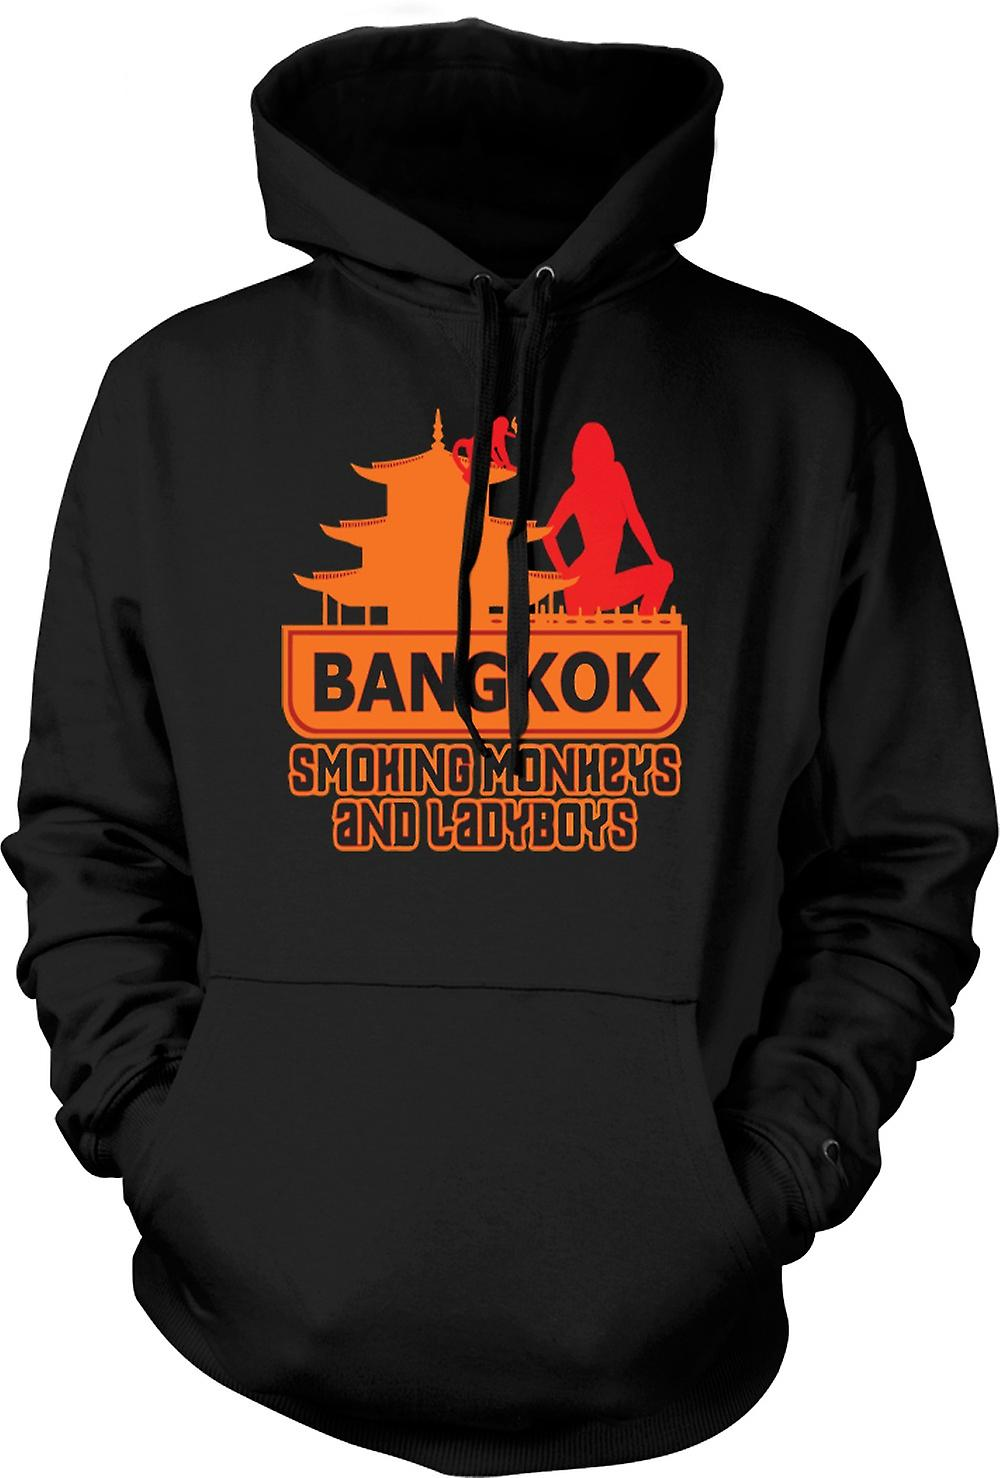 Mens Hoodie - Bangkok - Smoking Monkeys And Ladyboys - Quote